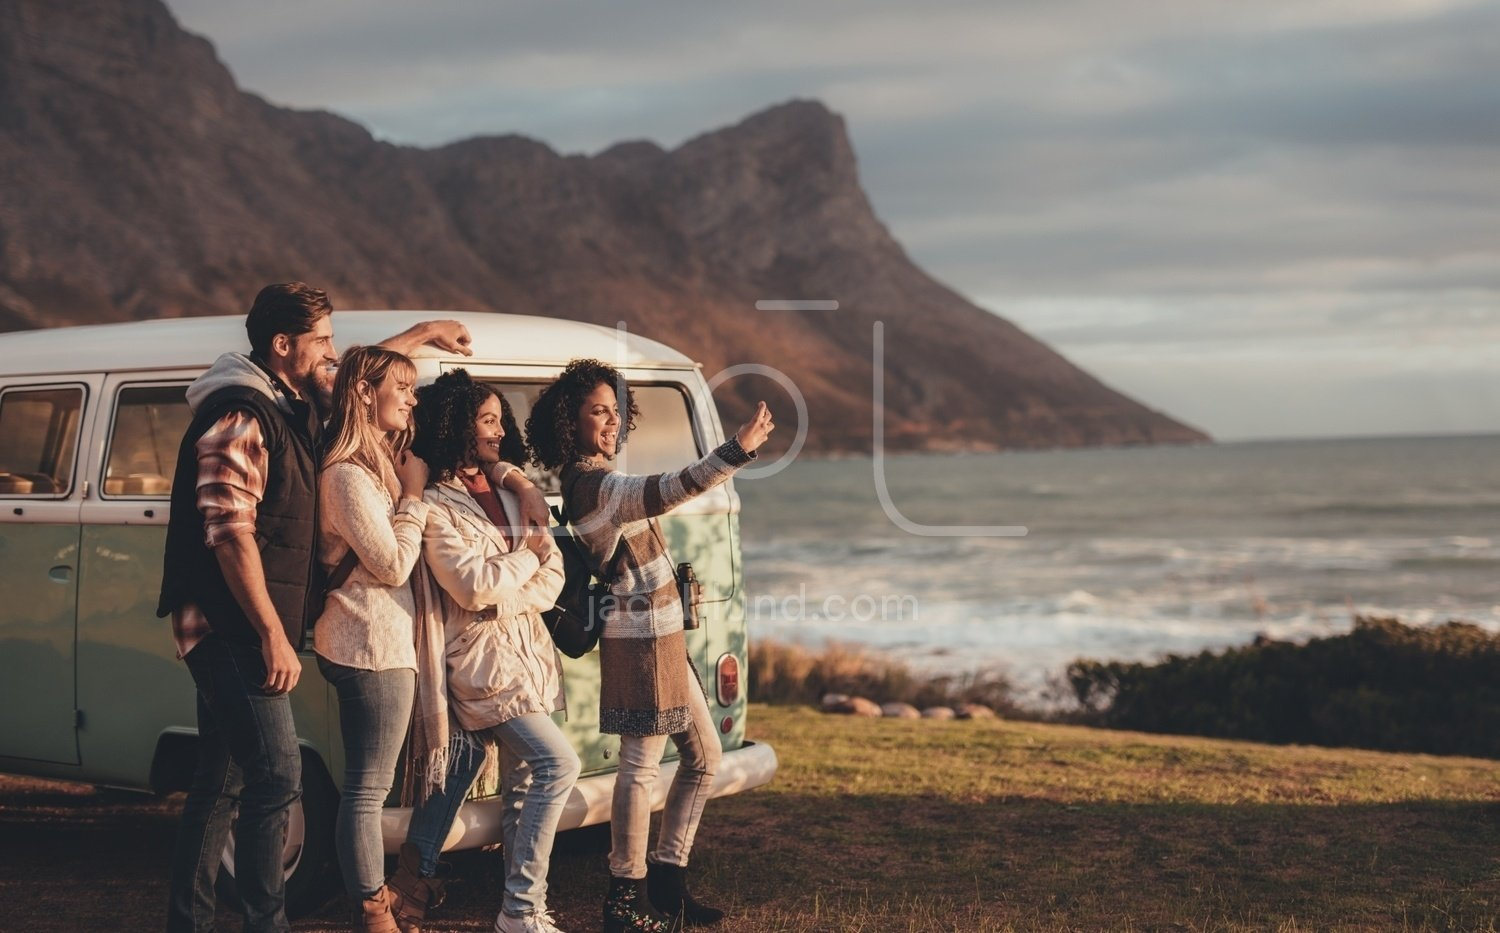 Friends On Roadtrip Together Taking A Selfie Jacob Lund Photography Store Premium Stock Photo